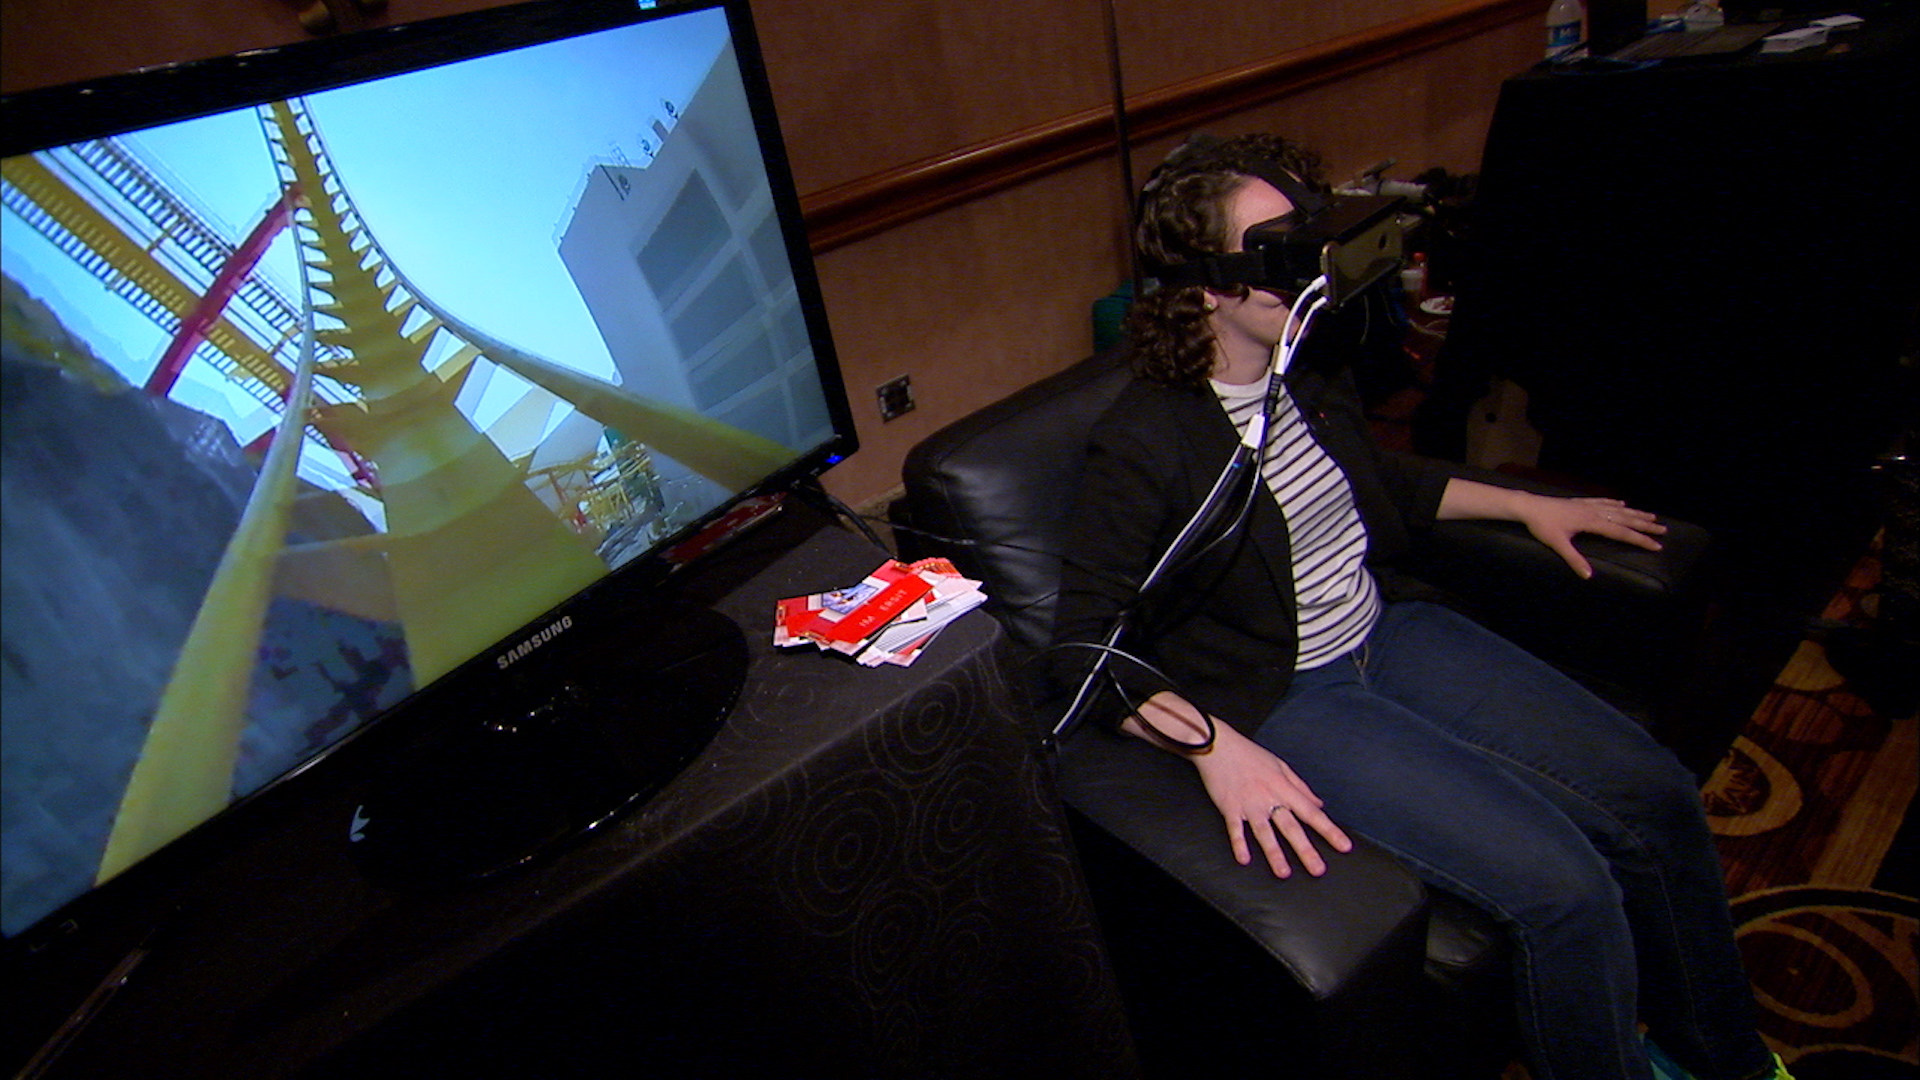 Video: Immersit makes watching a movie at home much more exciting